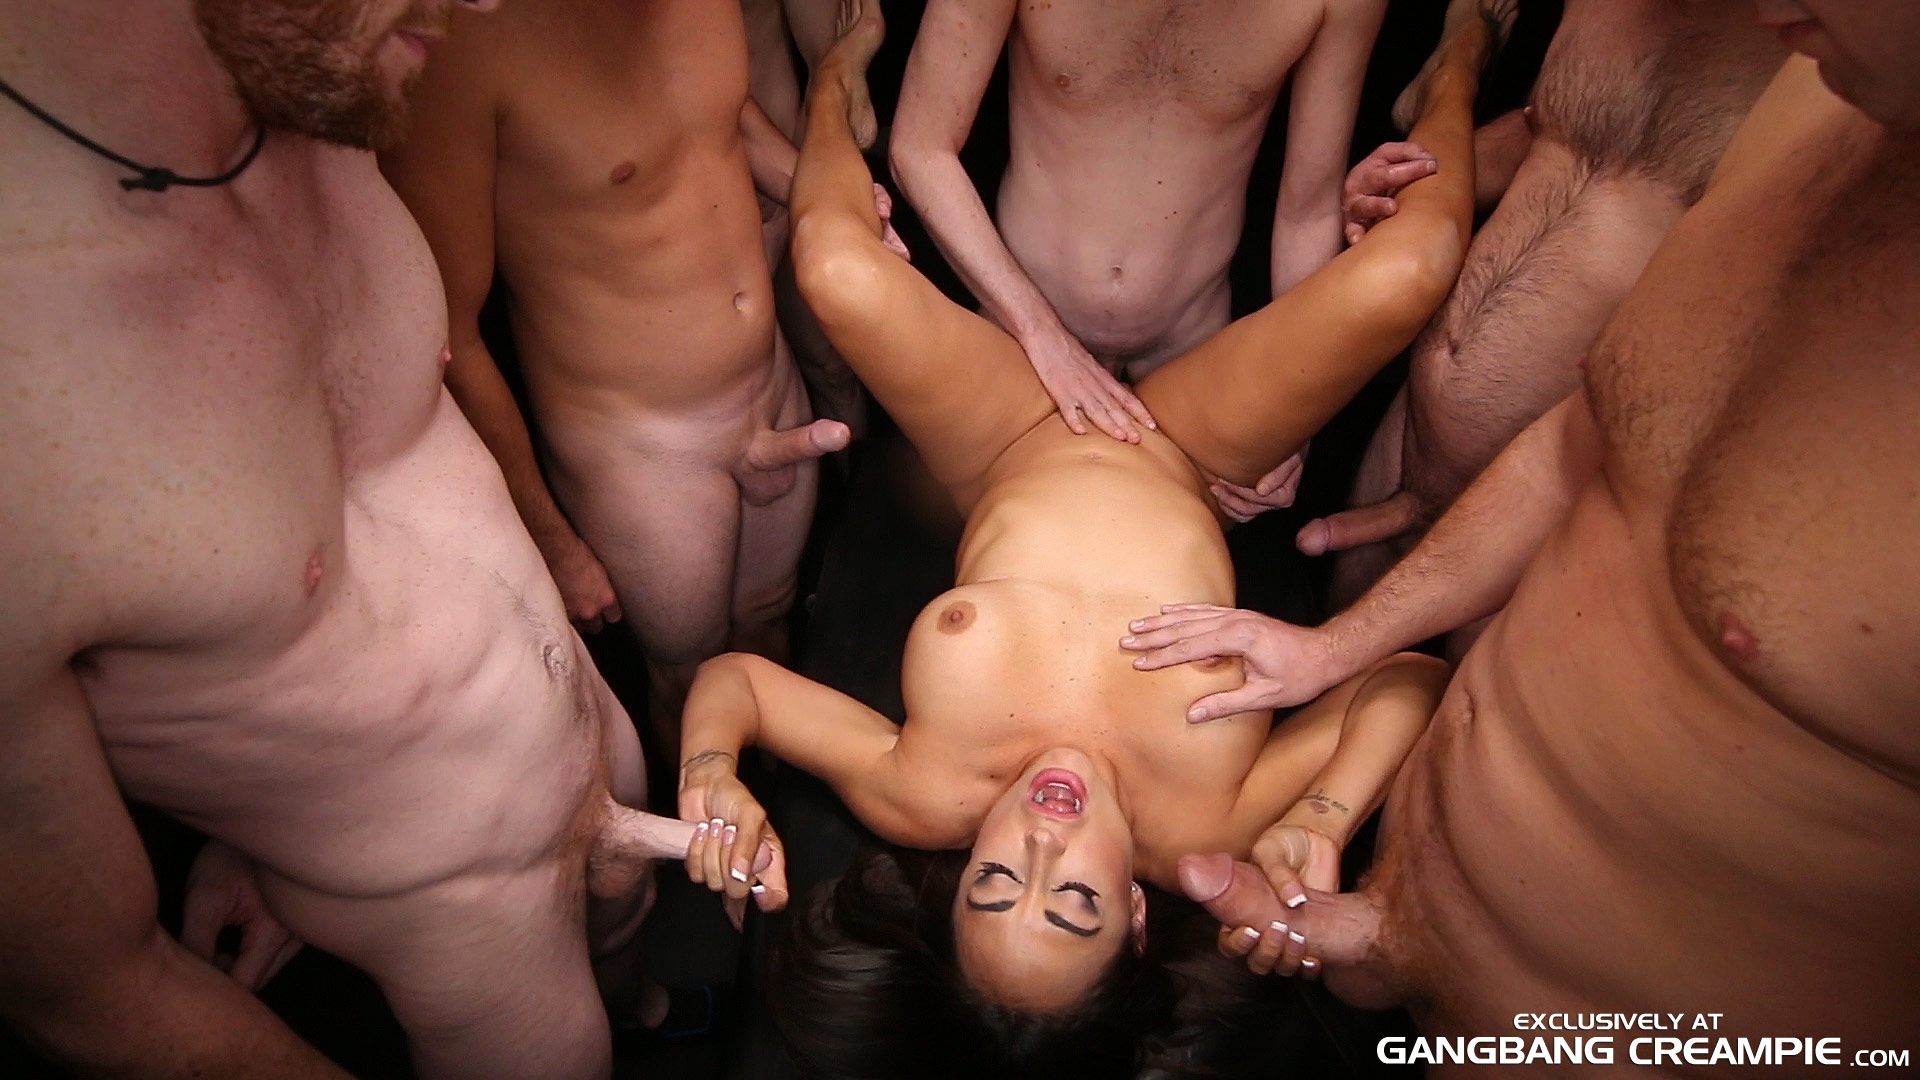 tiny pussy overflowing with cum gangbang creampie the